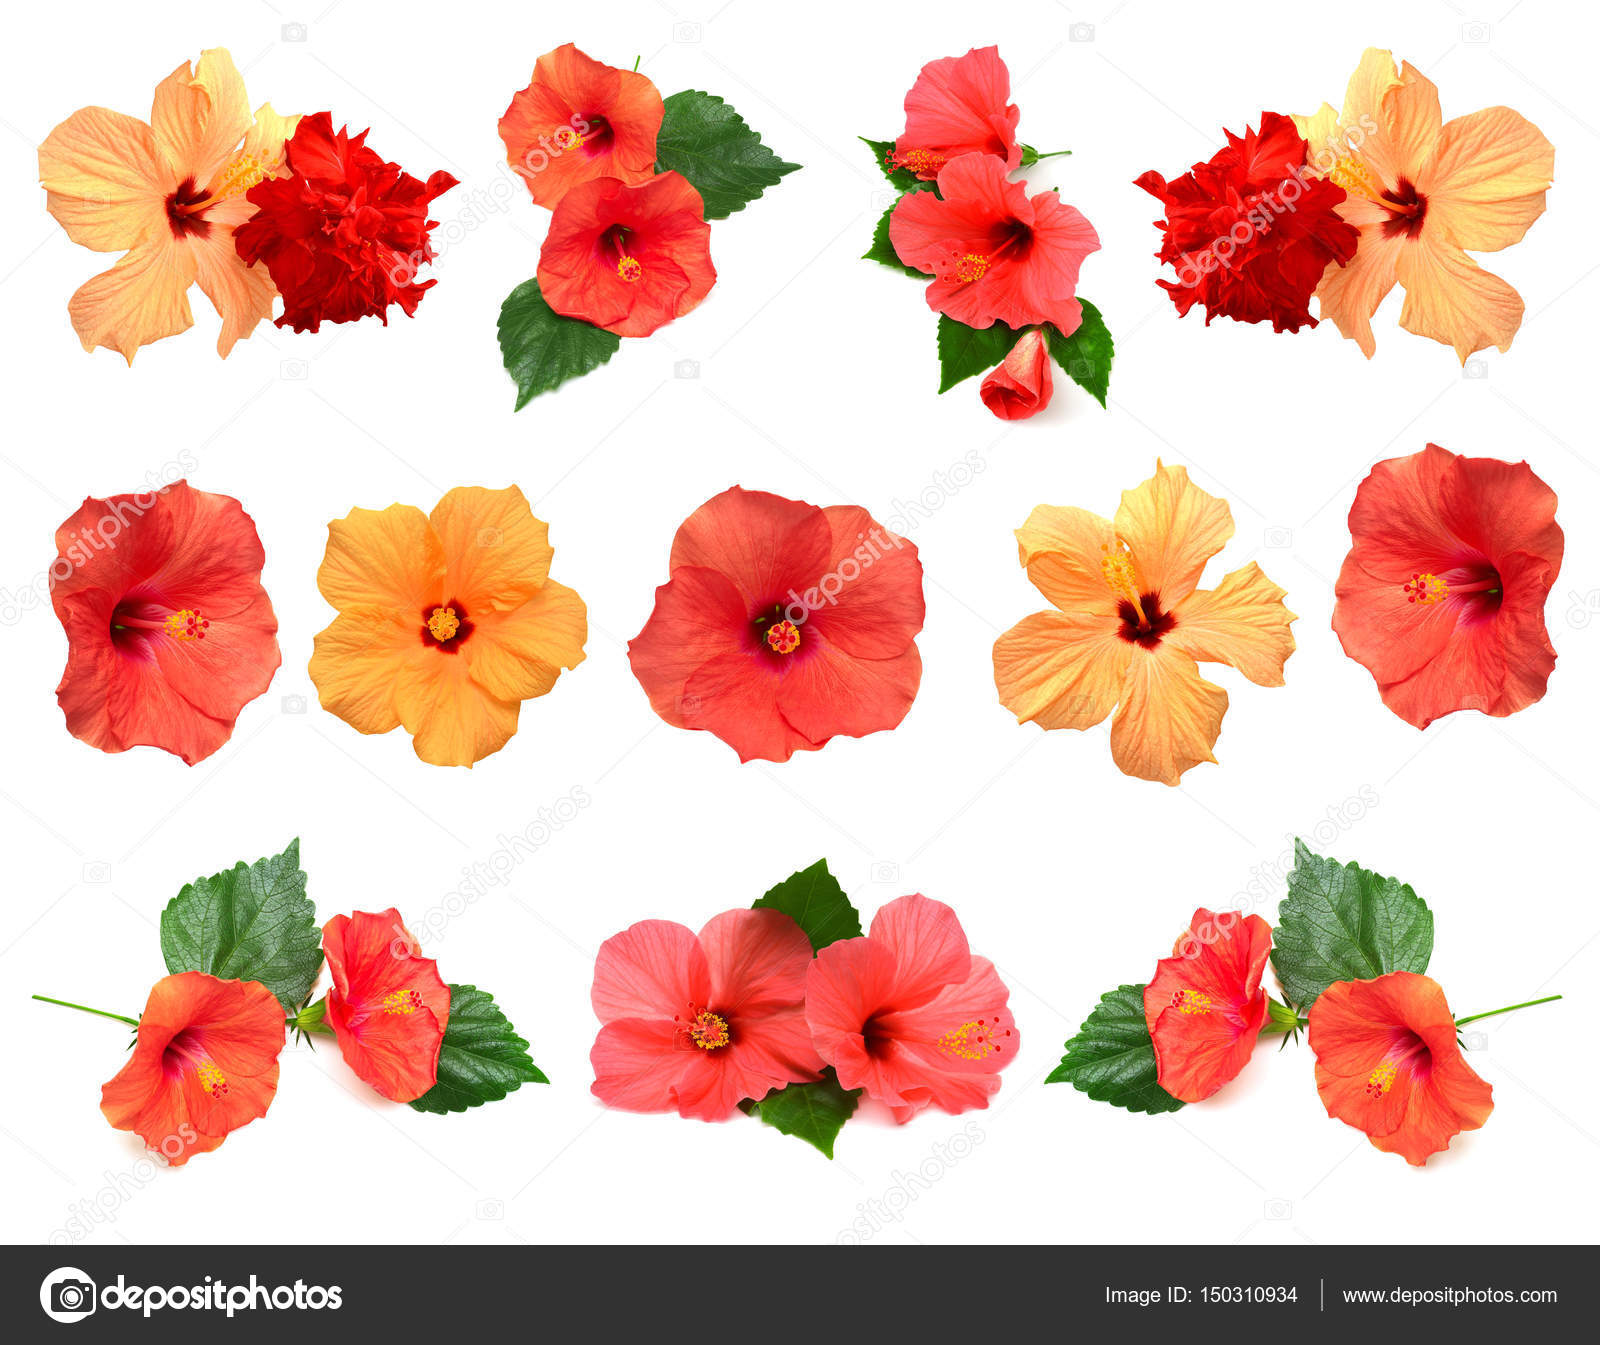 Collection of hibiscus flowers stock photo ian2010 150310934 collection of colored hibiscus flowers with leaves isolated on white background photo by ian2010 izmirmasajfo